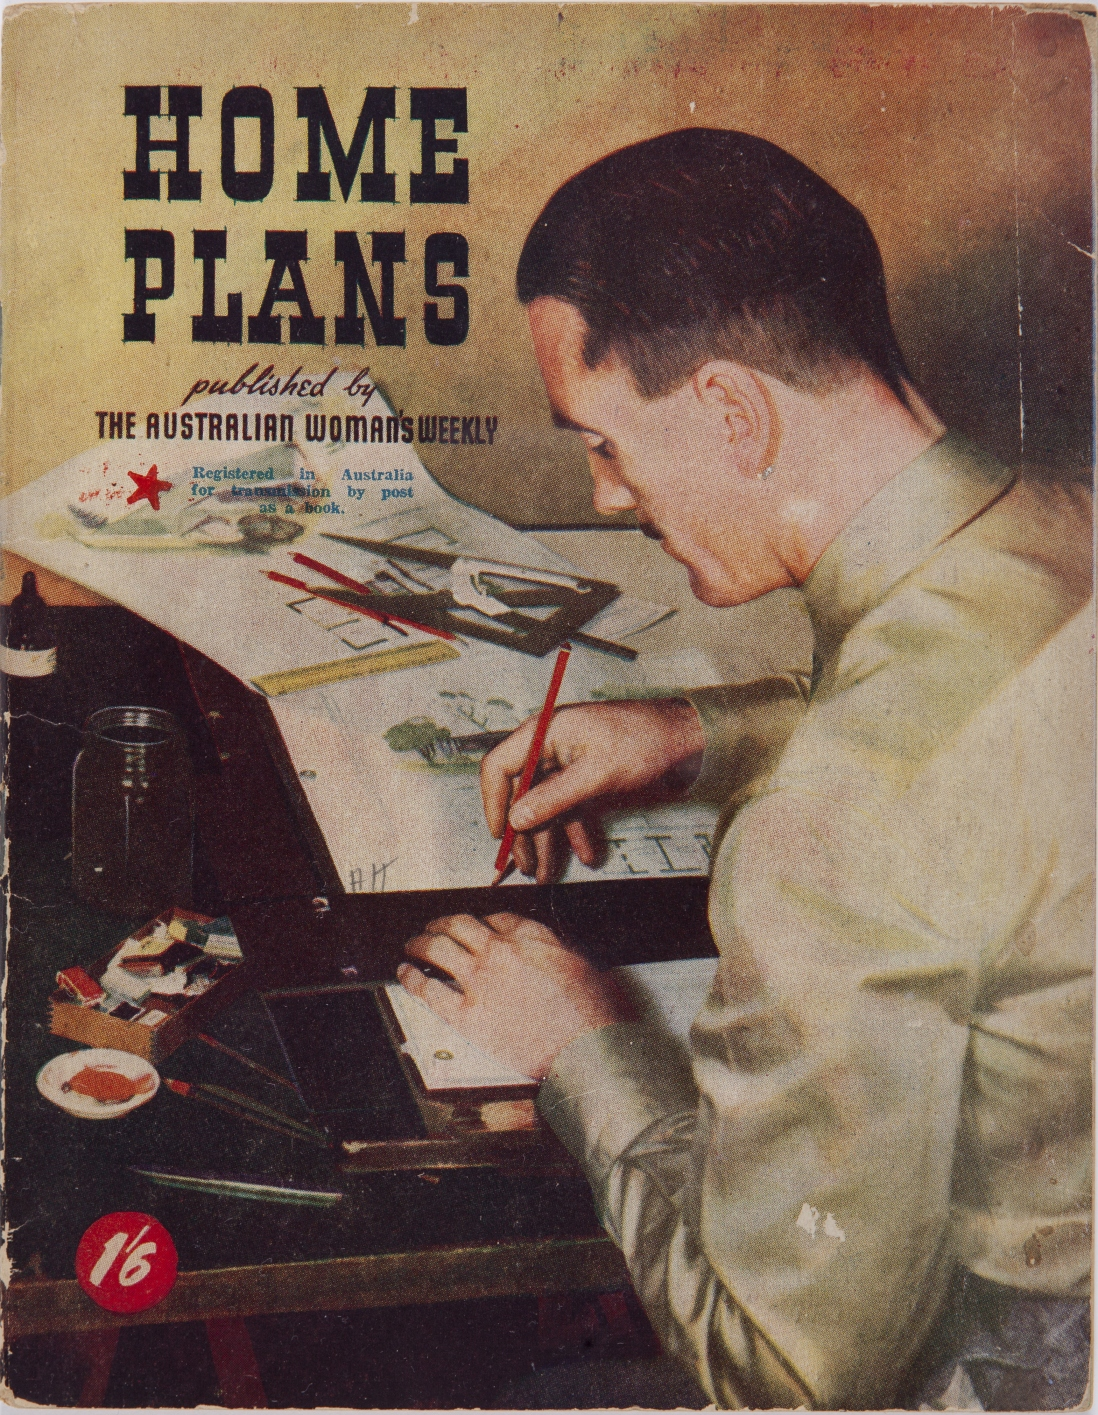 Cover of book, with title Home Plans. Illustration of man sitting at desk drawing plans.